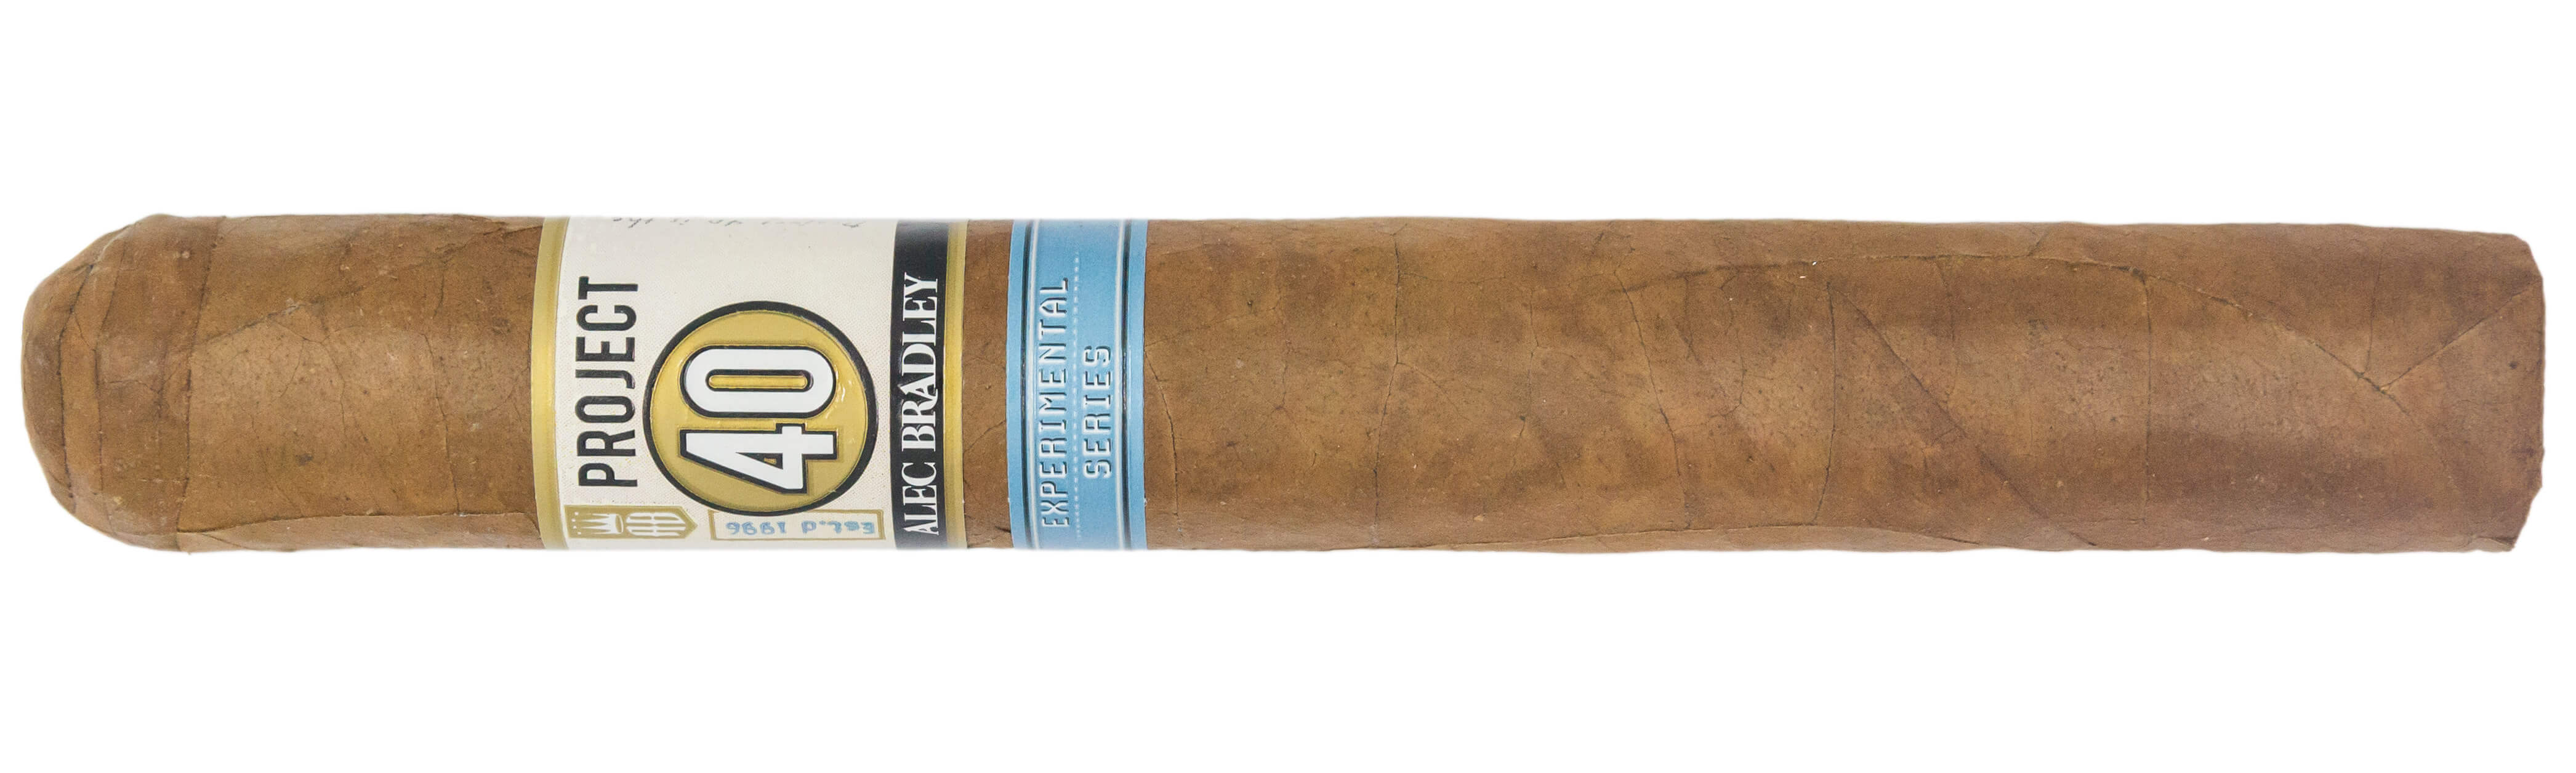 Blind Cigar Review: Alec Bradley | Project 40 06.52